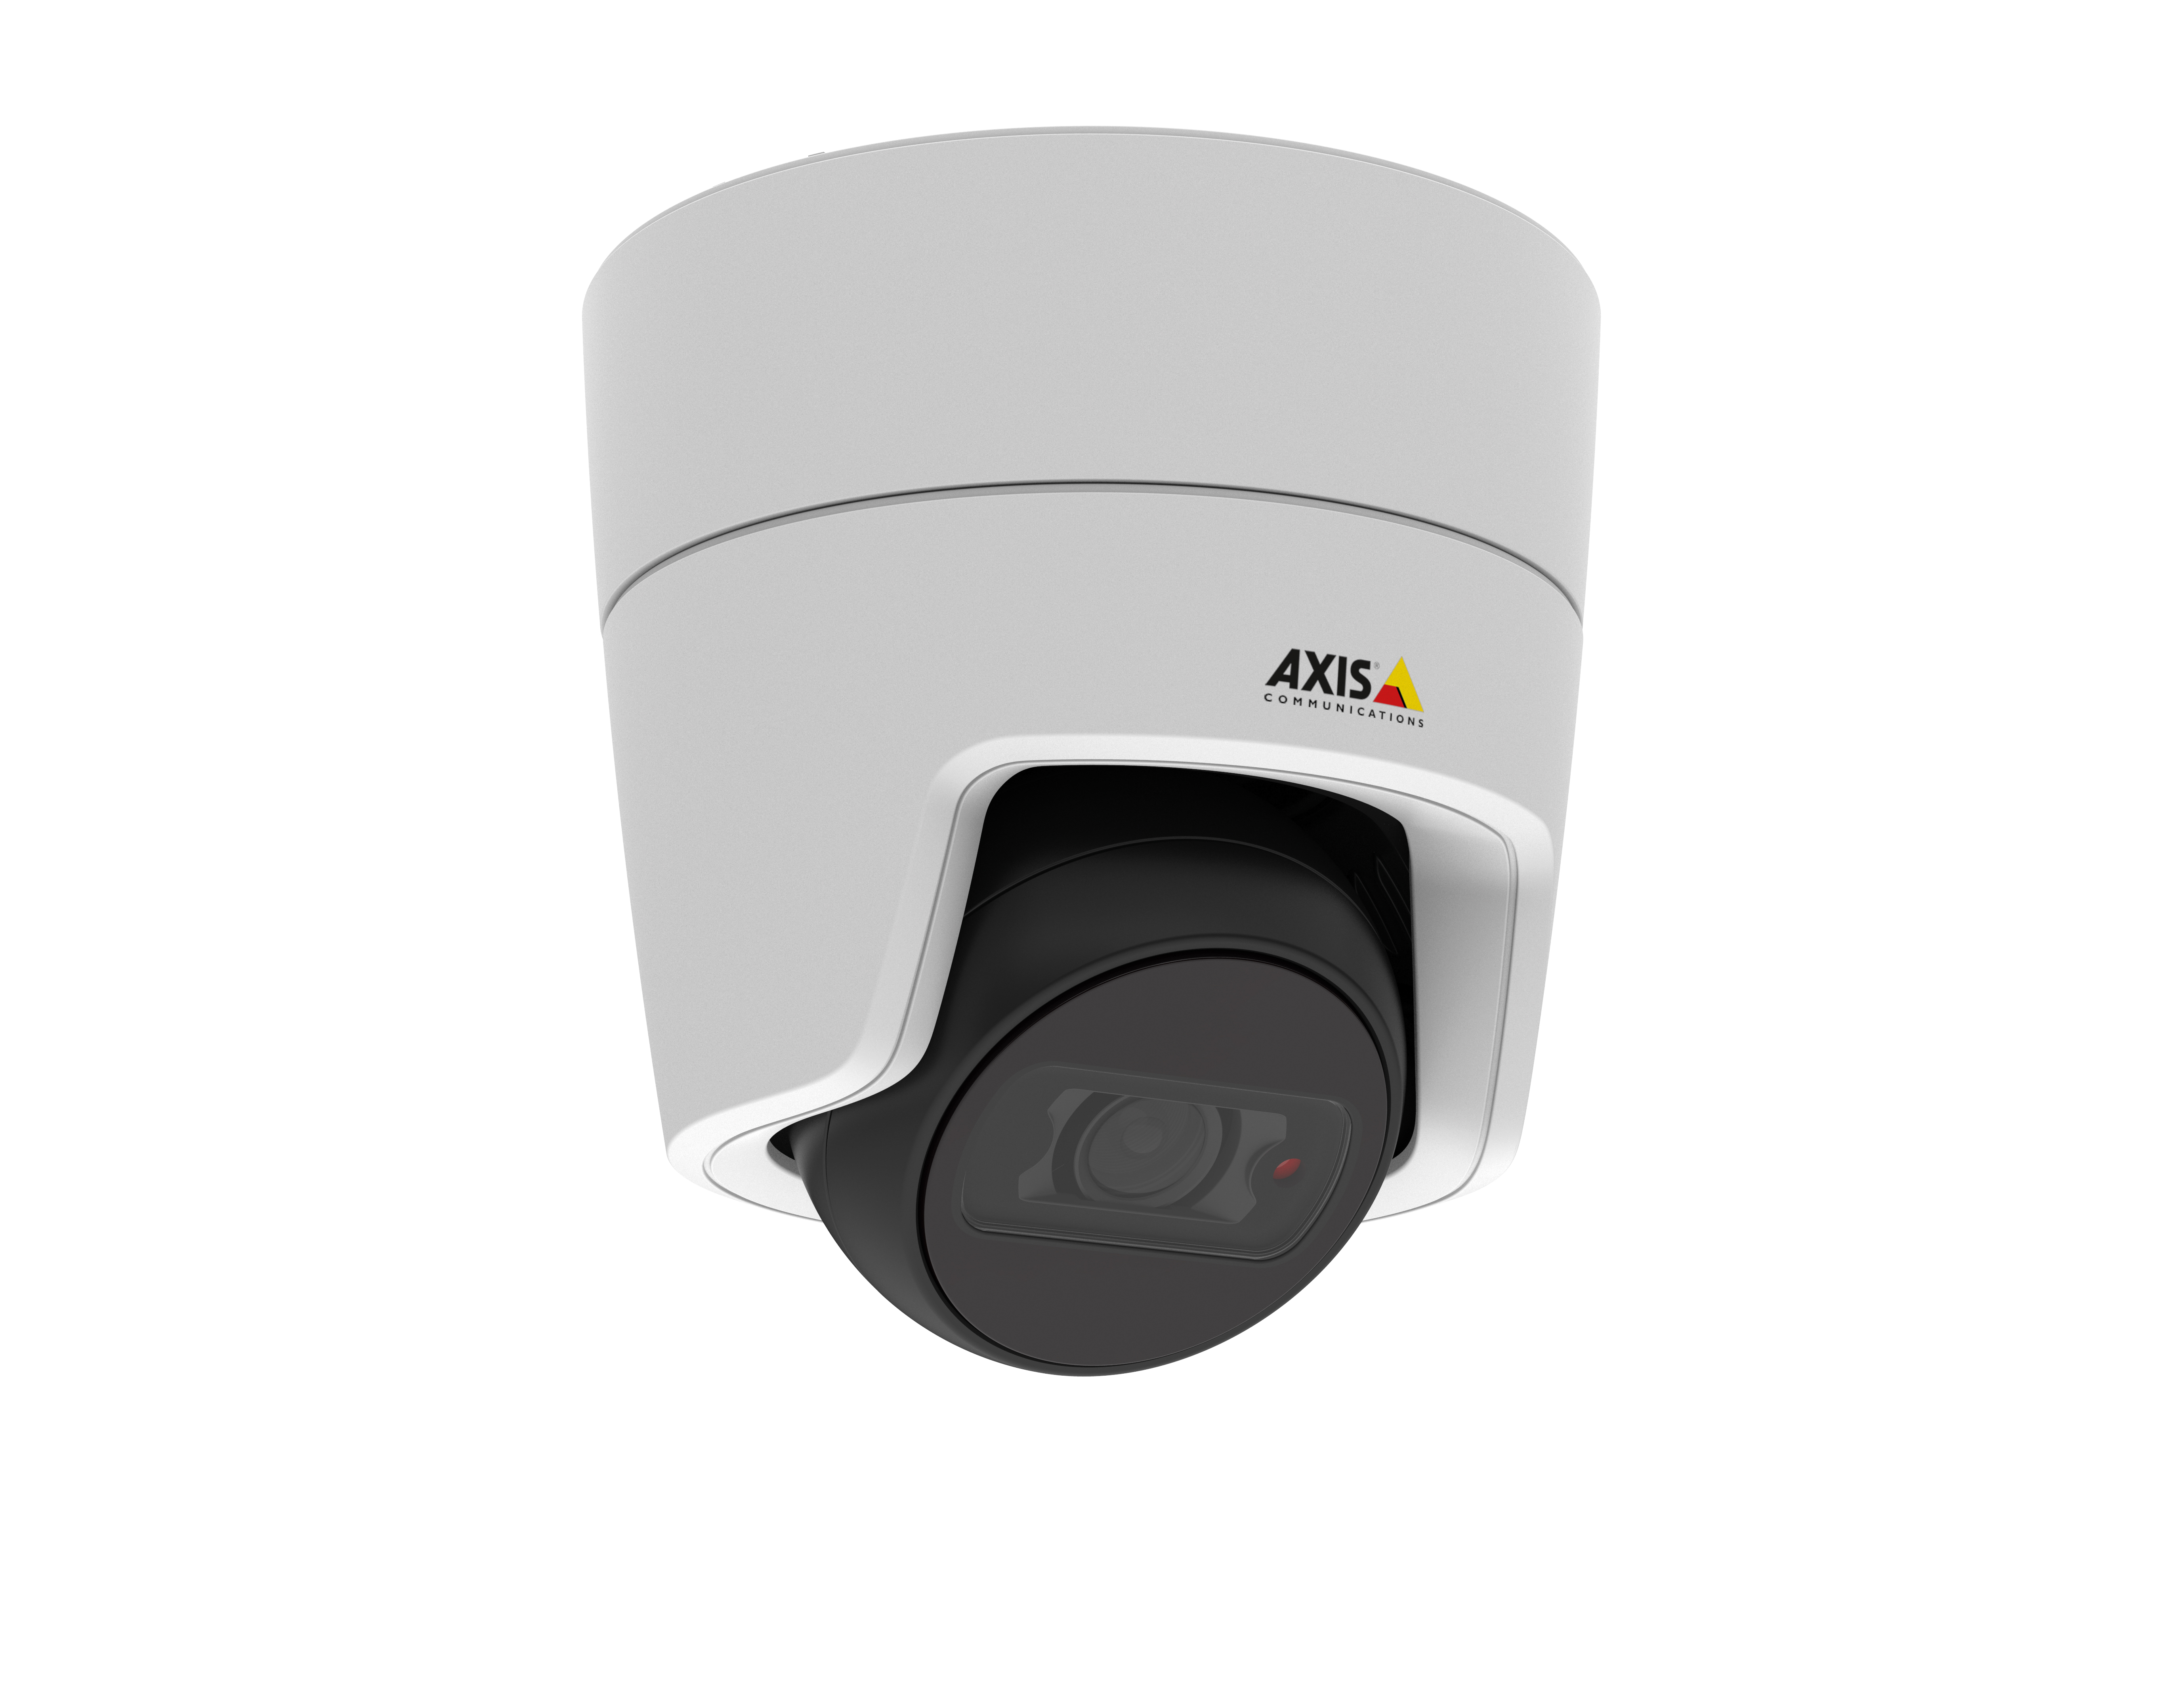 AXIS Companion Eye LVE